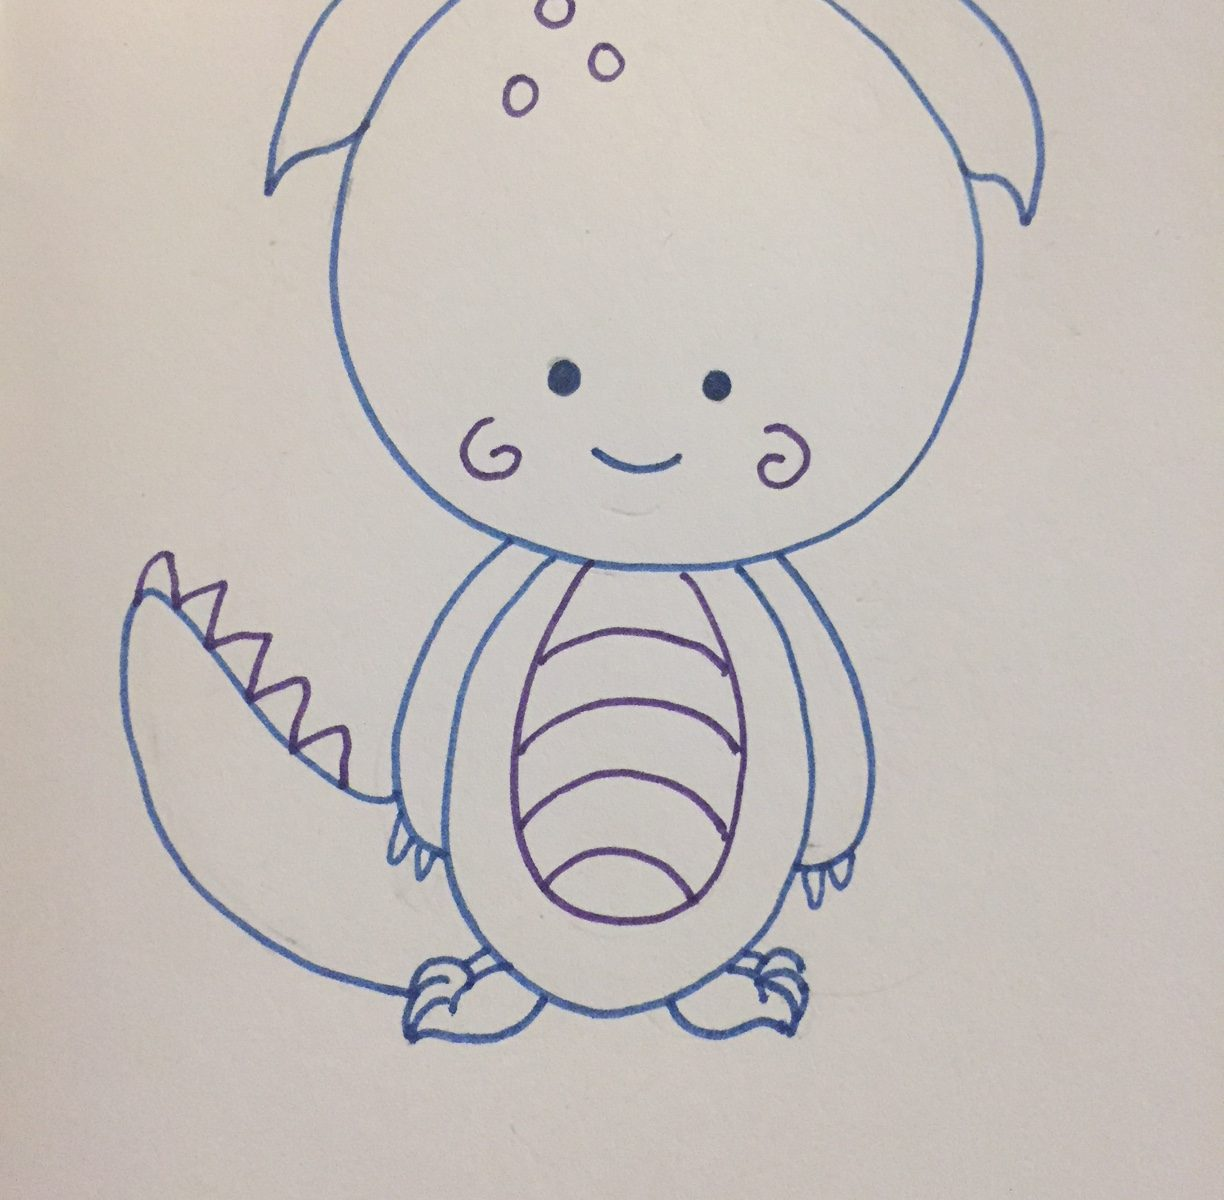 Small Dragon with big head, purple and blue